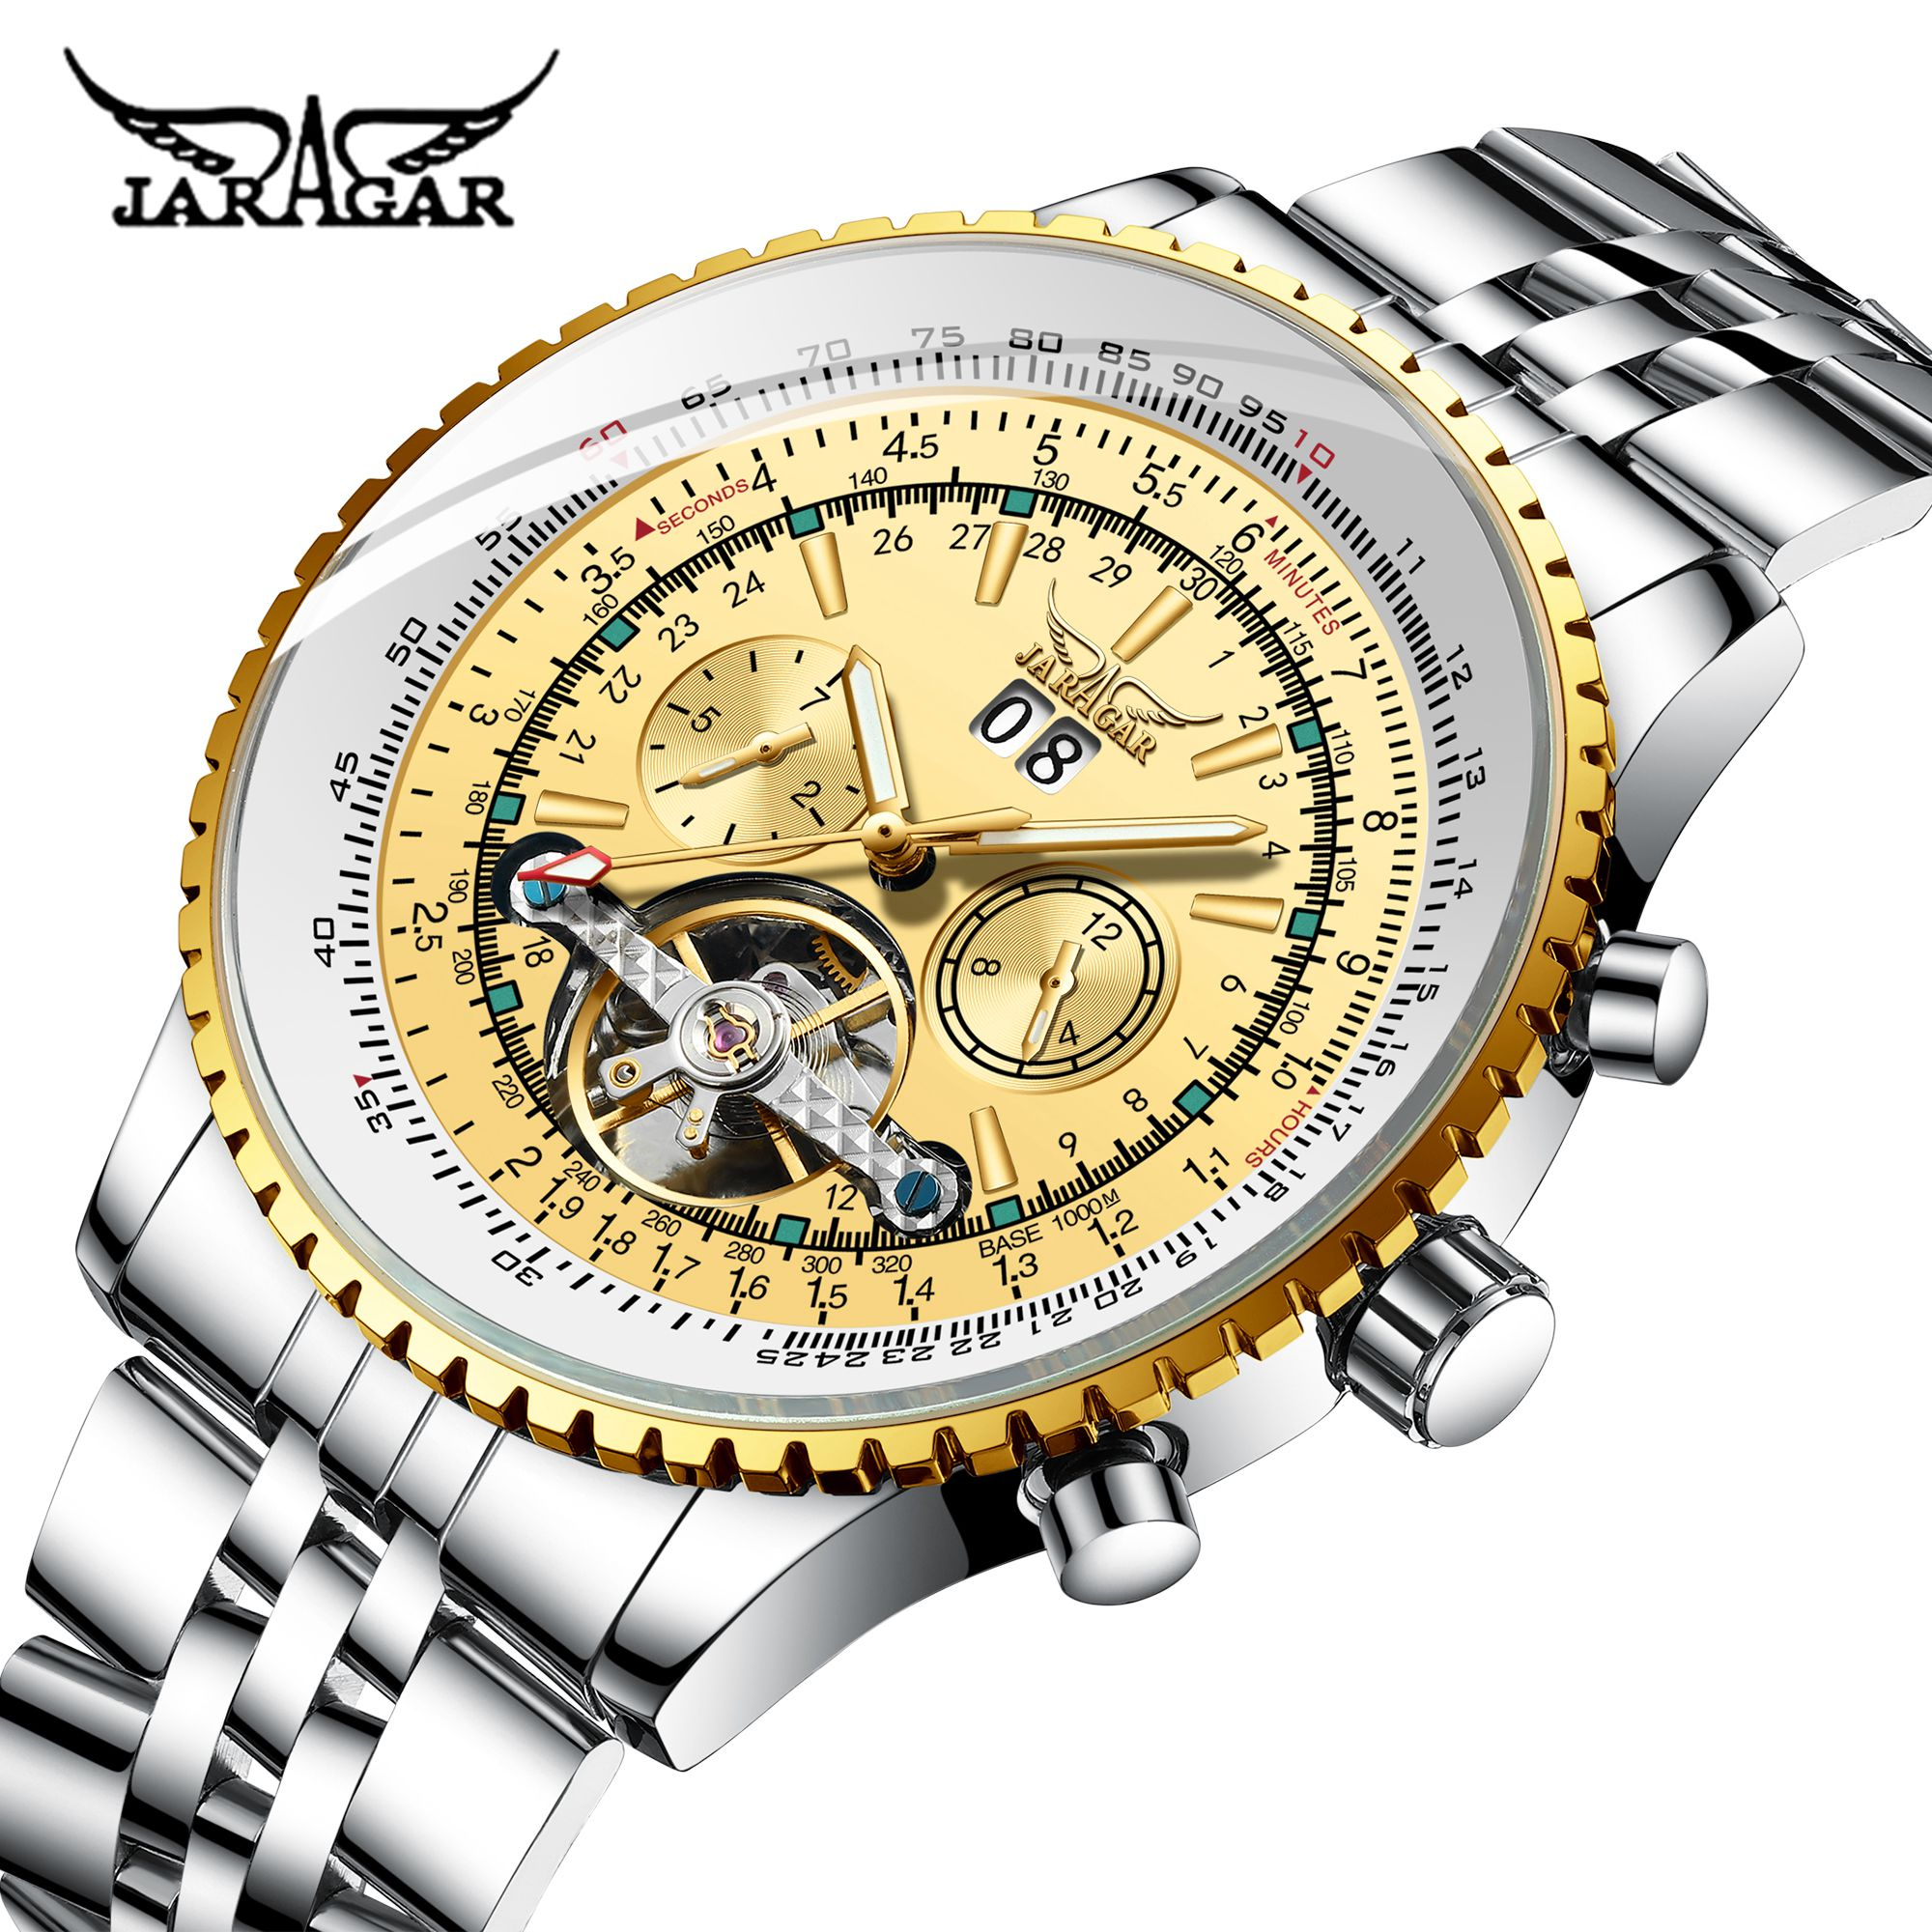 Automatic Mechanical Watch Jaragar Men Watches Unique Dial Design Watches for Men Relogio Masculino Male Clocks Digital Gifts